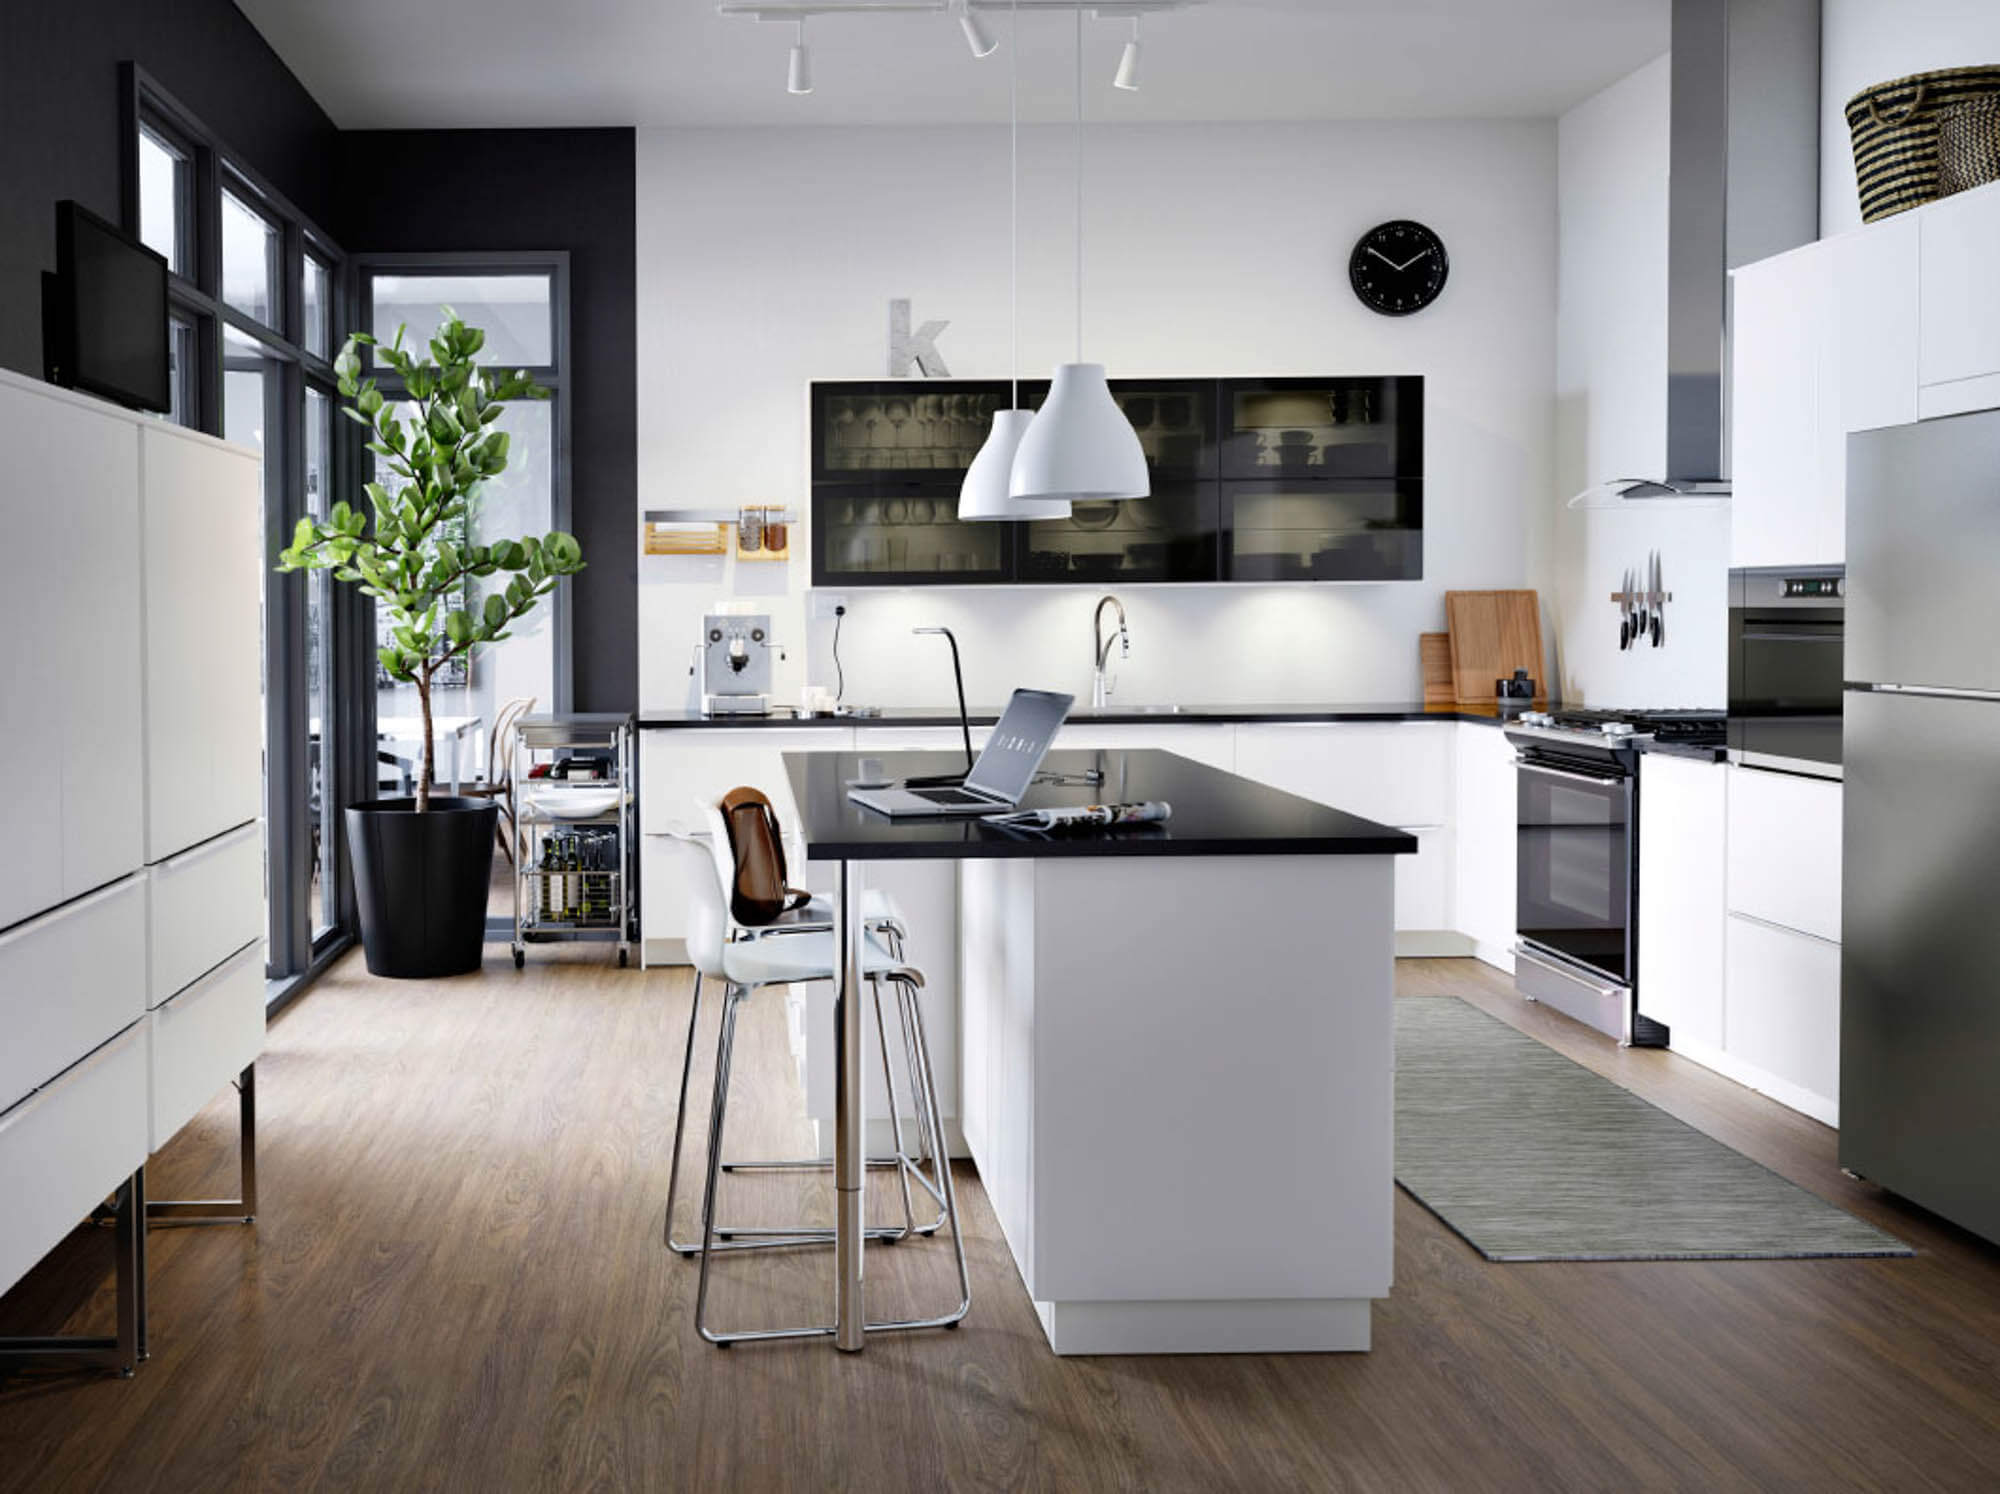 Ikea Kitchen Design Forum Ikea Appliances Are Their Refrigerators A Good Deal Apartment